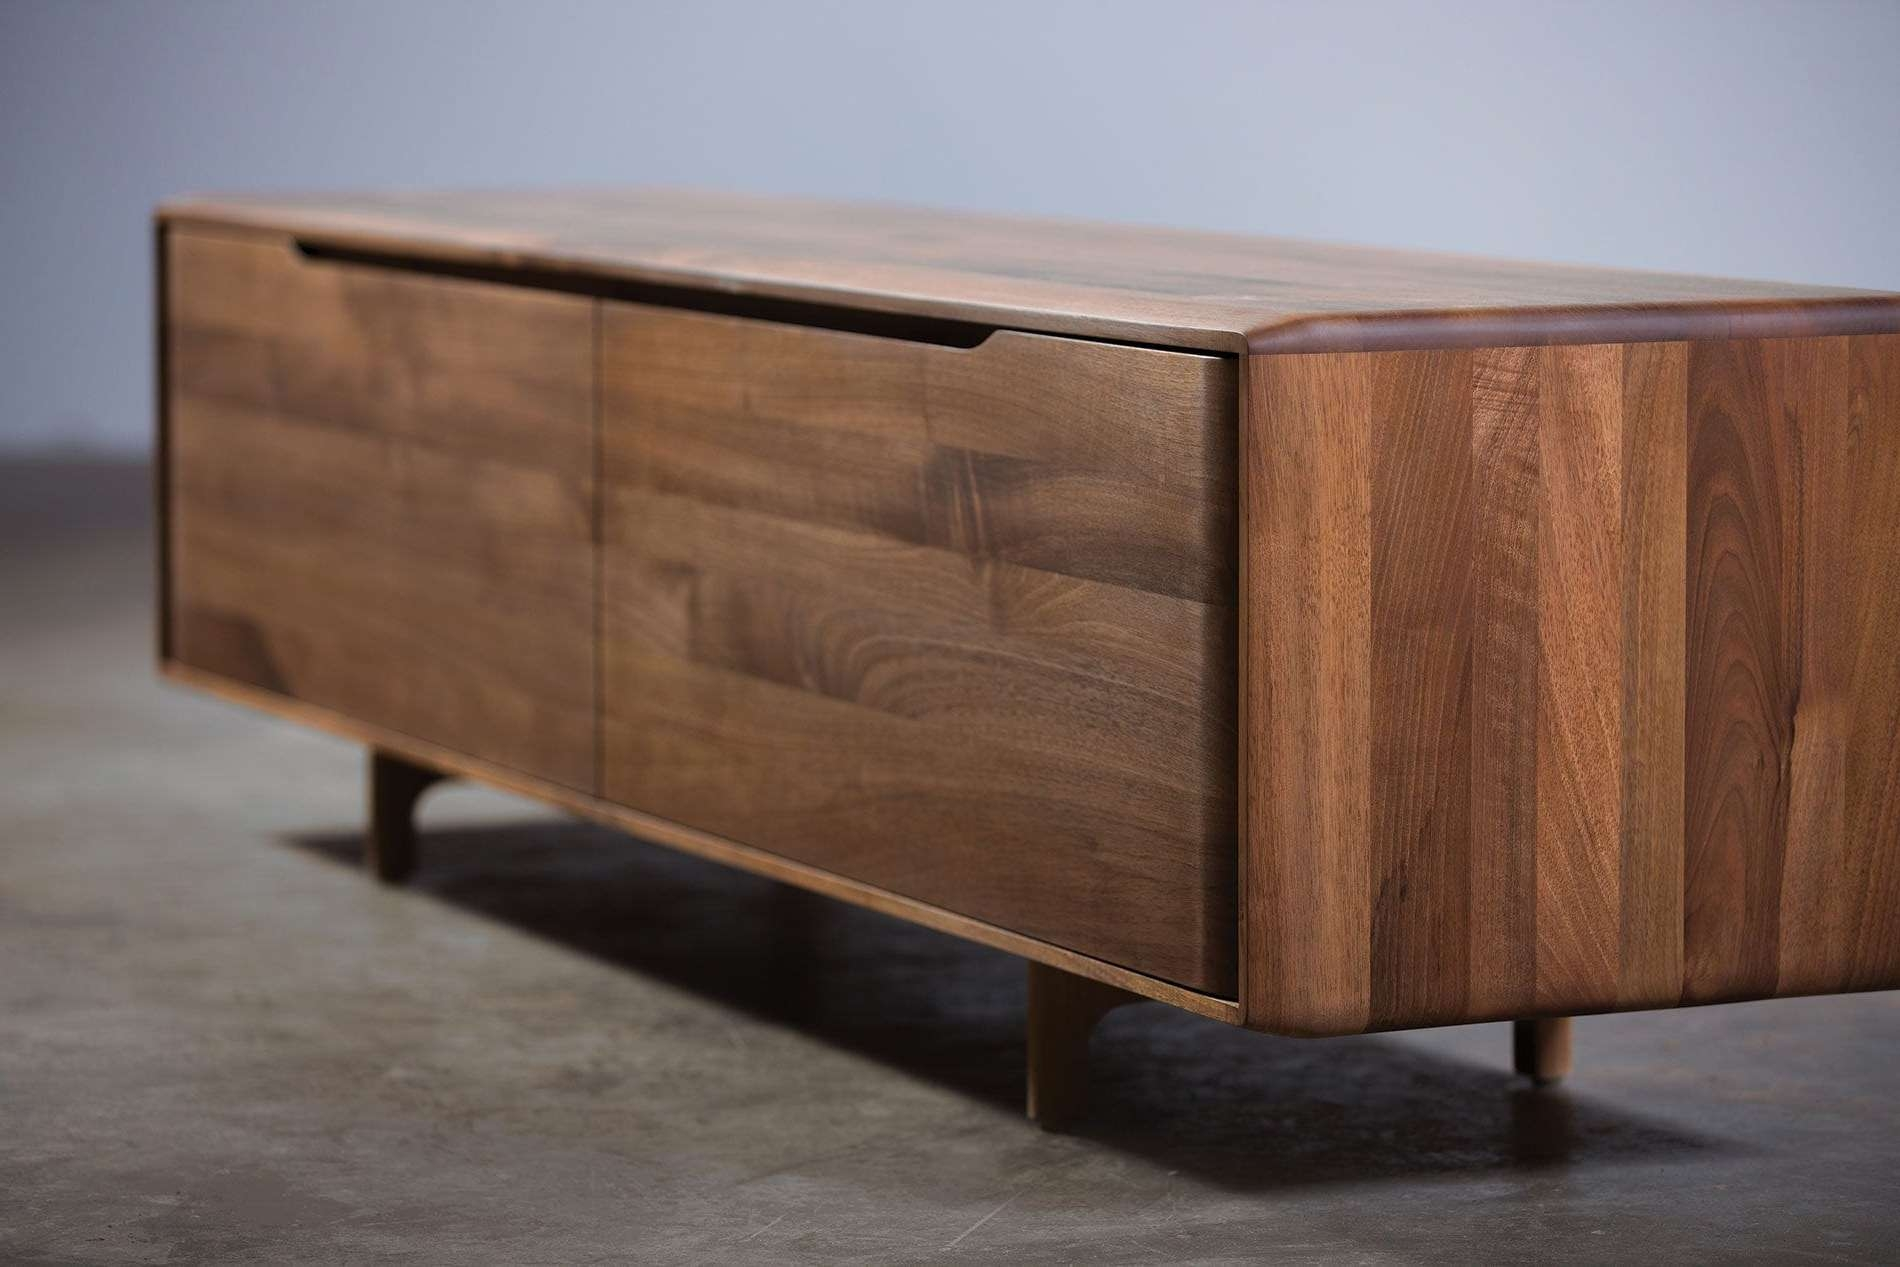 Contemporary Sideboard / Oak / Walnut / Solid Wood – Invito Within Furniture Sideboards (View 17 of 20)